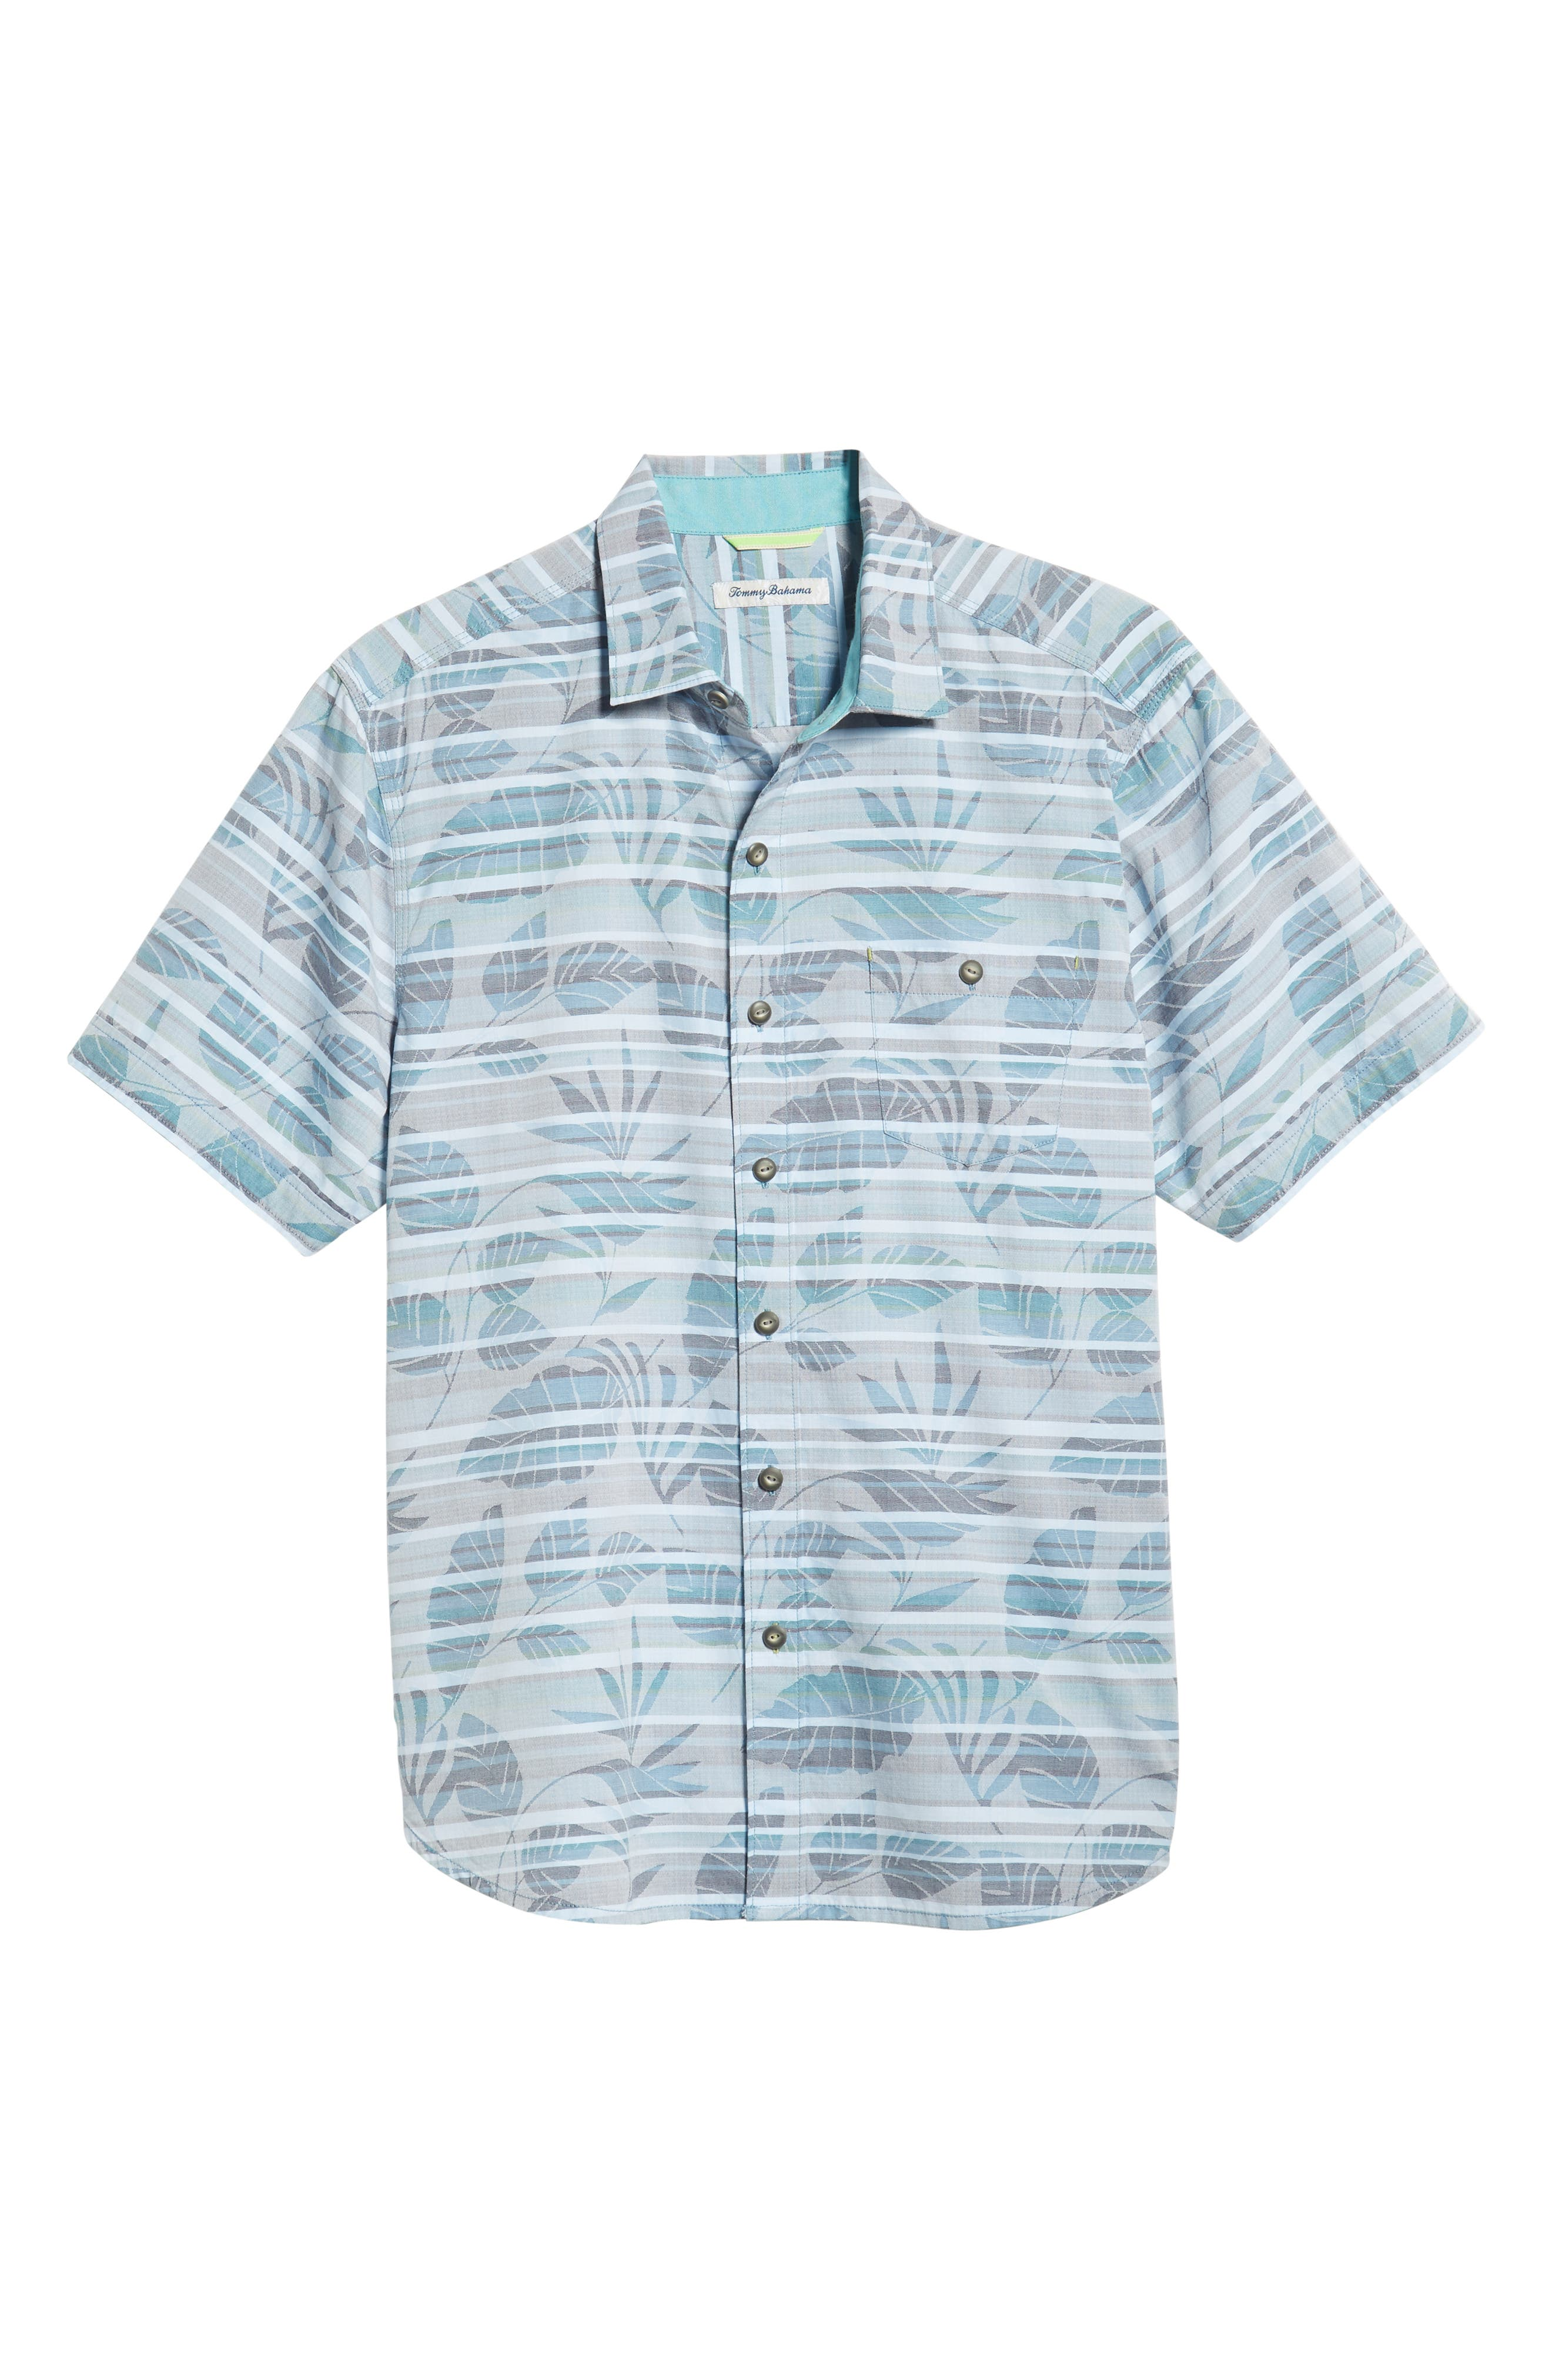 Playa of Paradise Regular Fit Camp Shirt,                             Alternate thumbnail 5, color,                             SEAGROVE